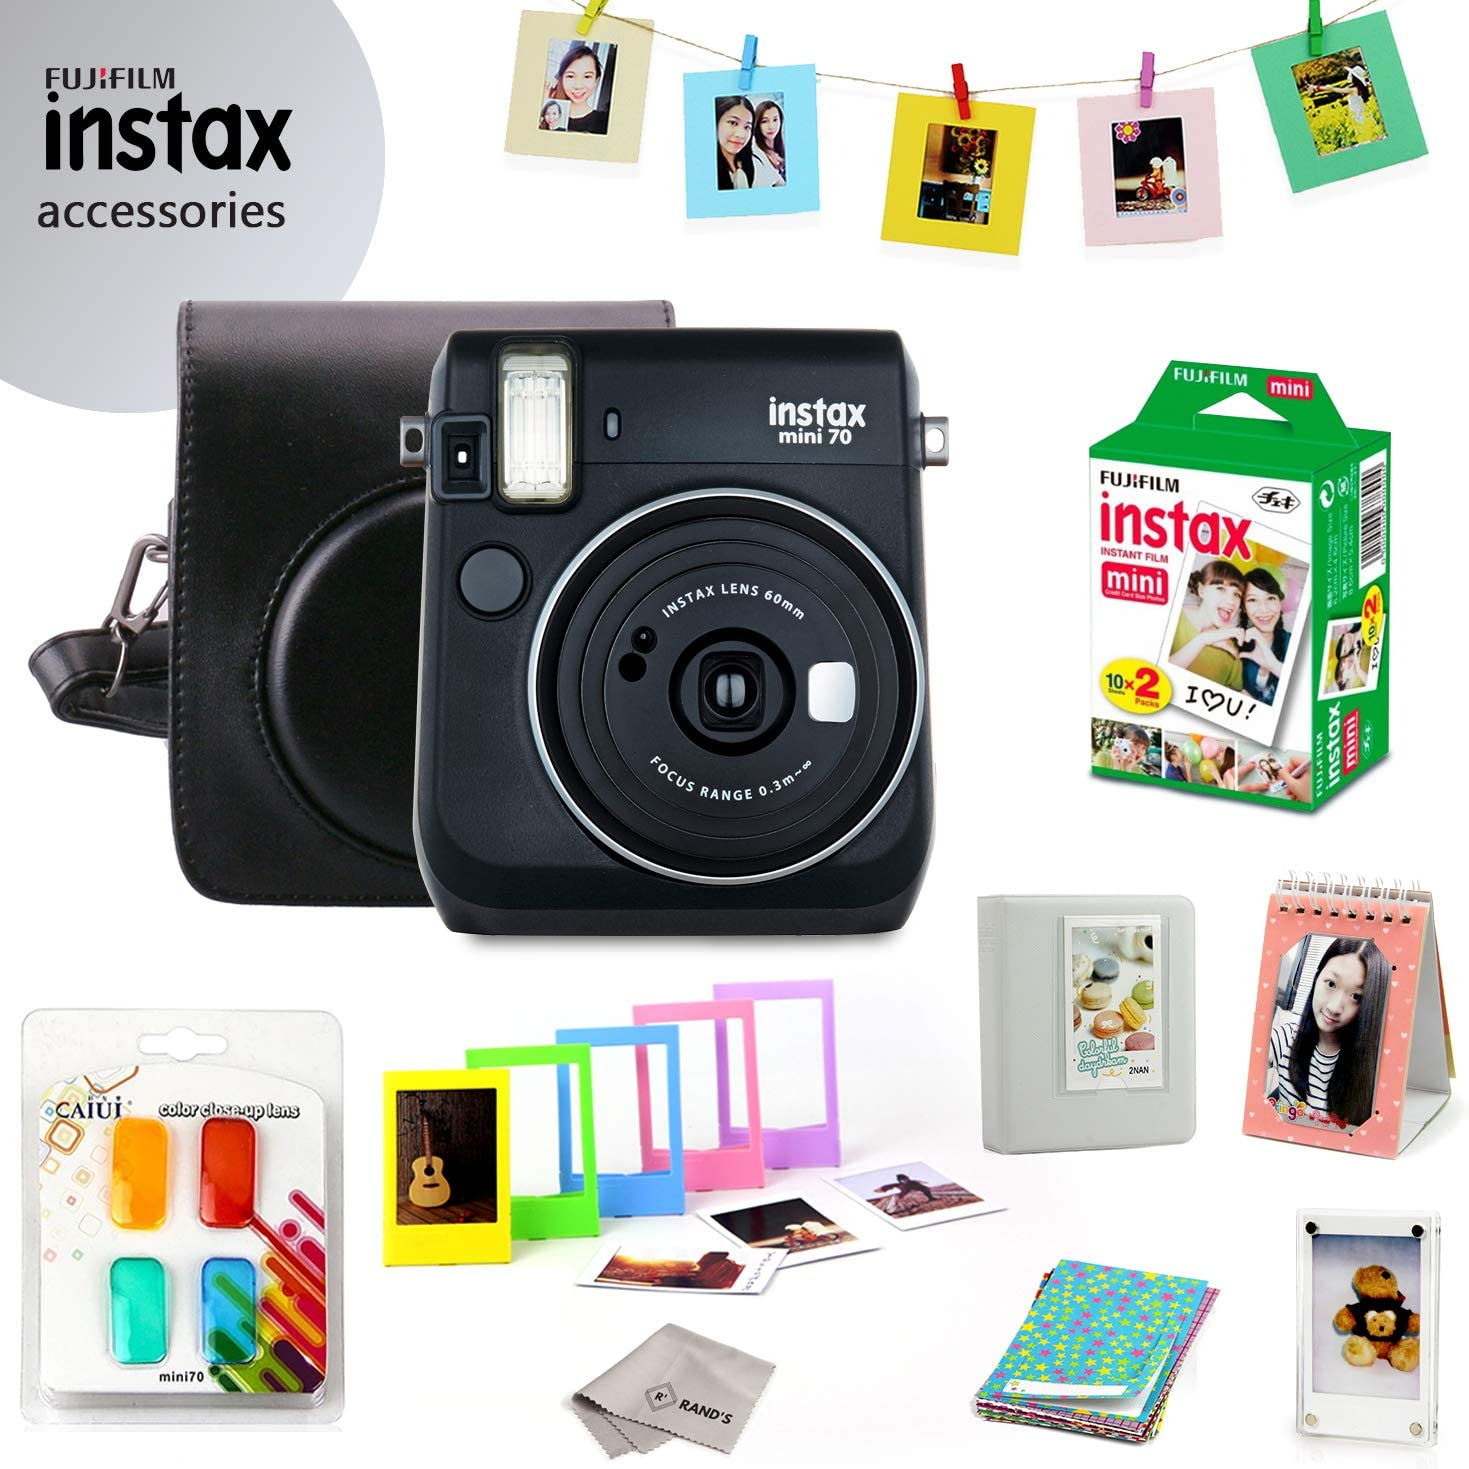 Fujifilm Instax Mini 70 Bundle (Black) - Fuji Camera Instant Film (20 Sheets) + 9-in-1 Accessory Bundle – Carry Case, 4 Color Filters, 2 Photo Albums, Assorted Frames & Much More